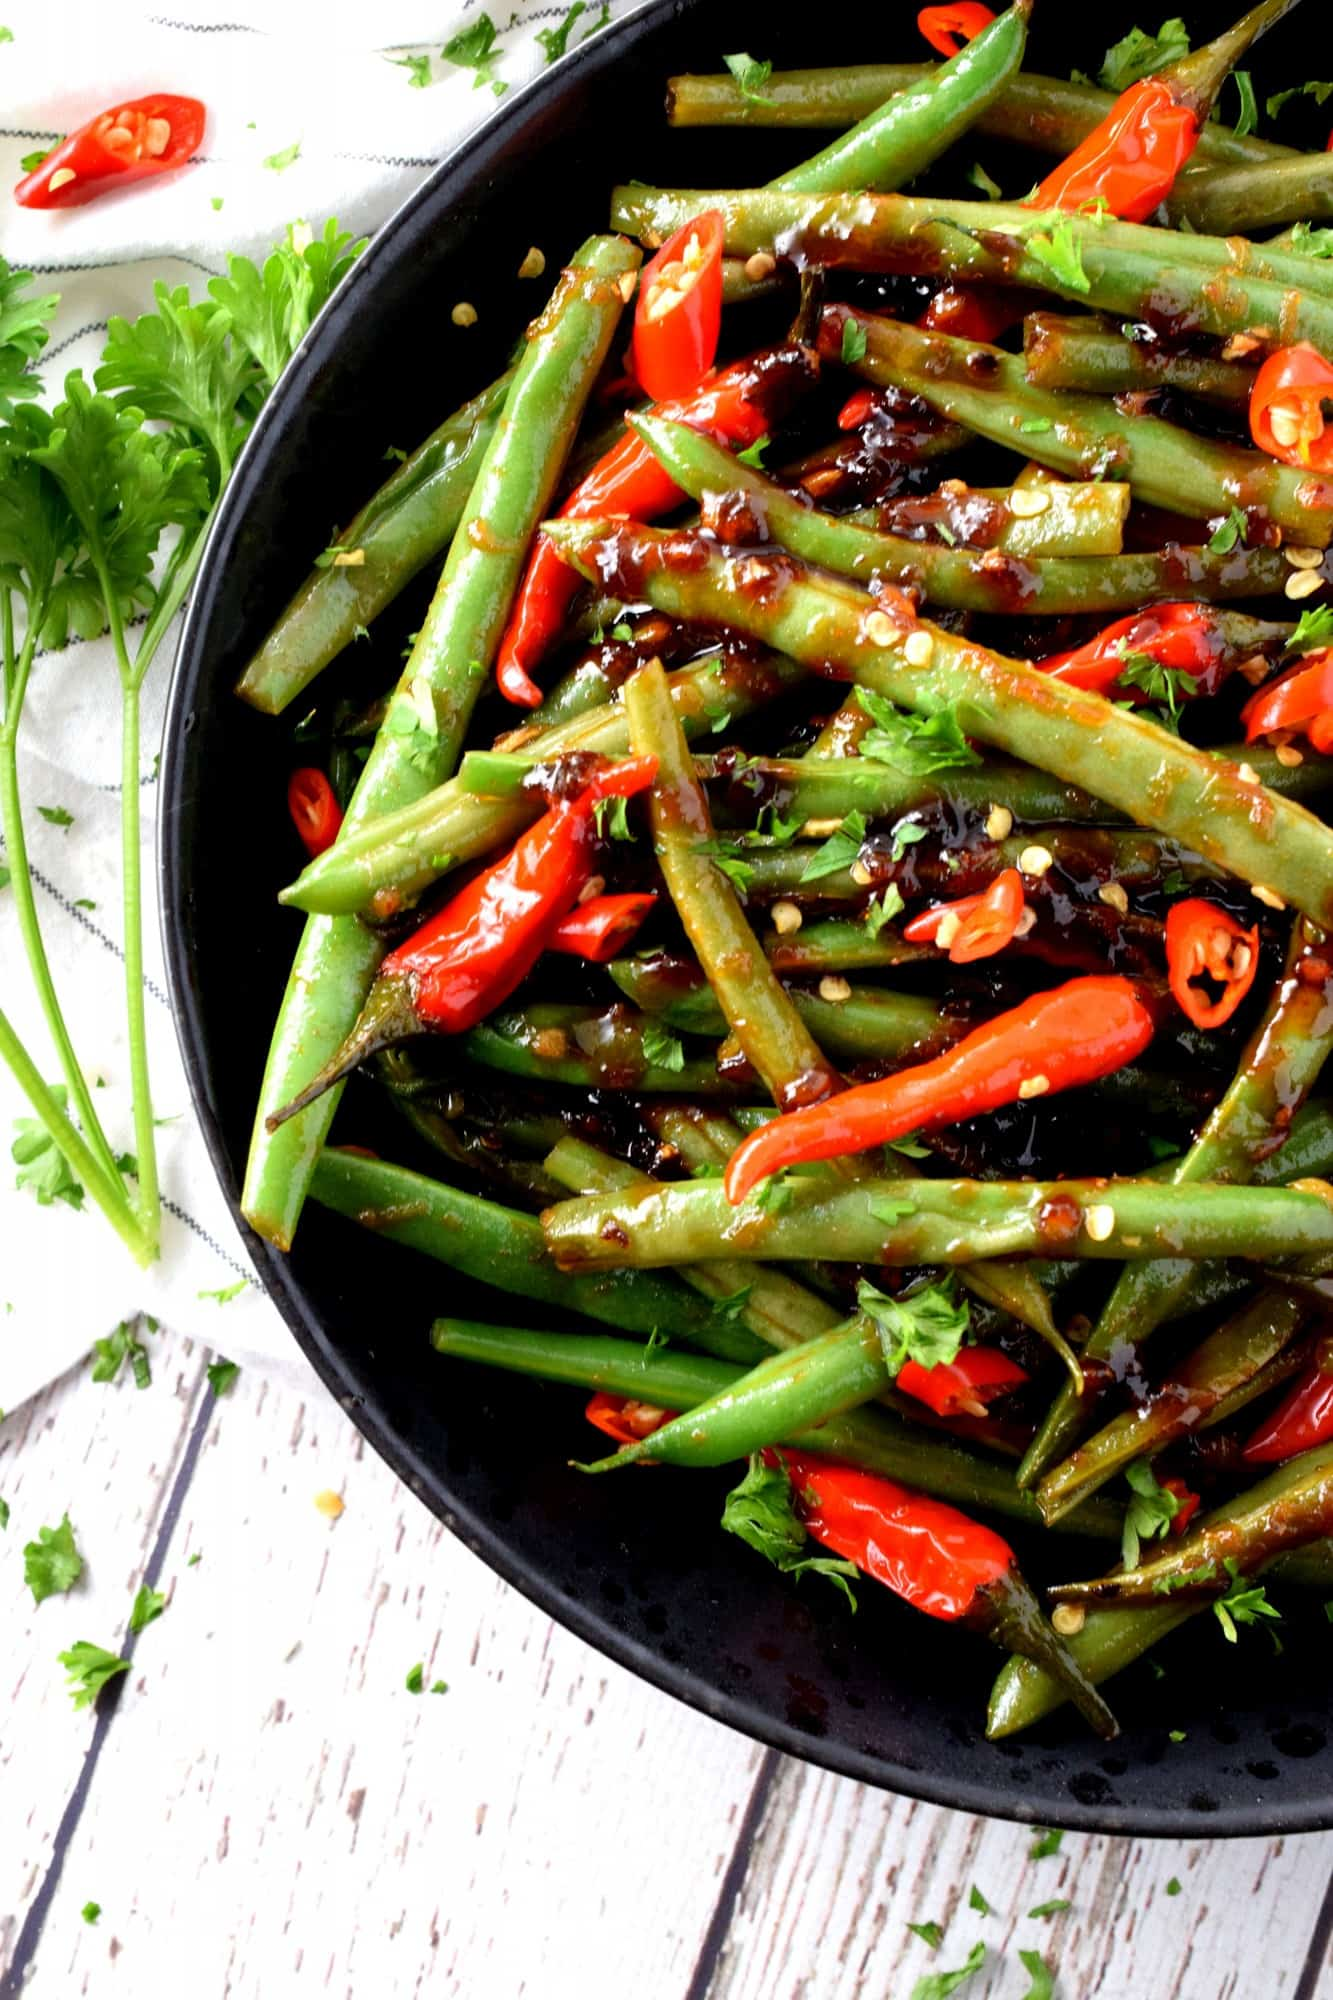 Hot And Spicy Szechuan Green Beans